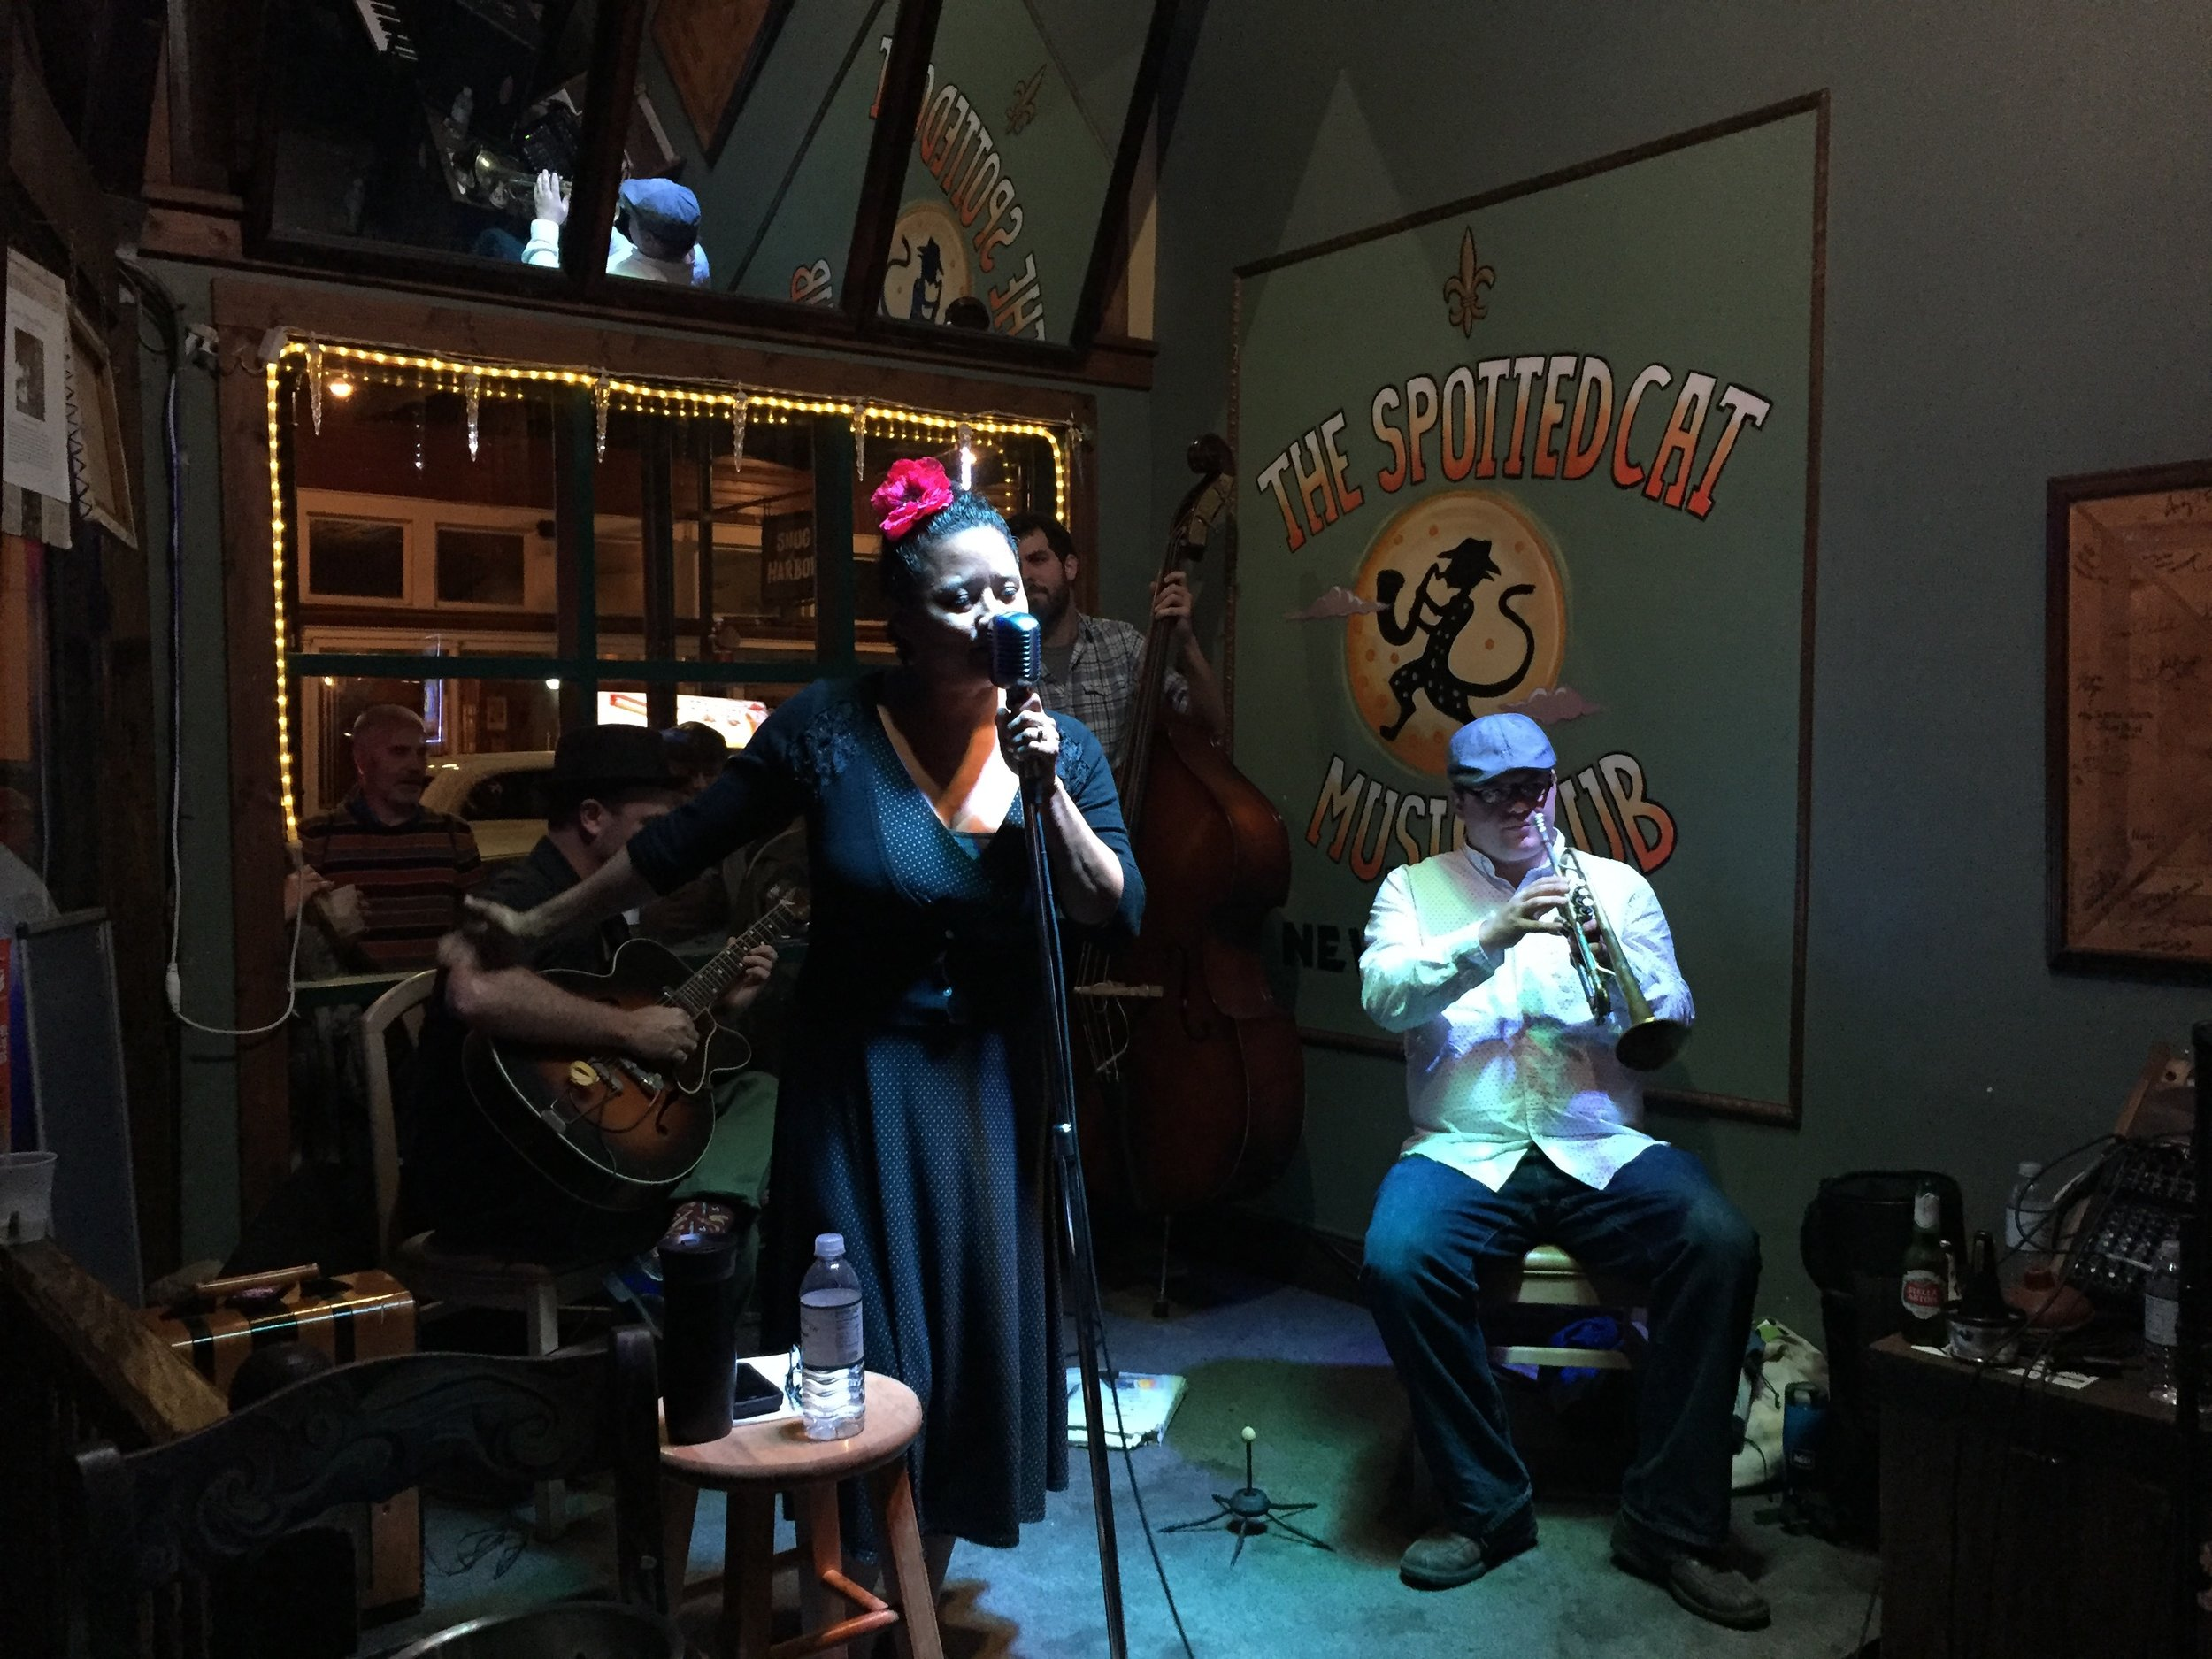 Live music at the Spotted Cat on Frenchmen Street.